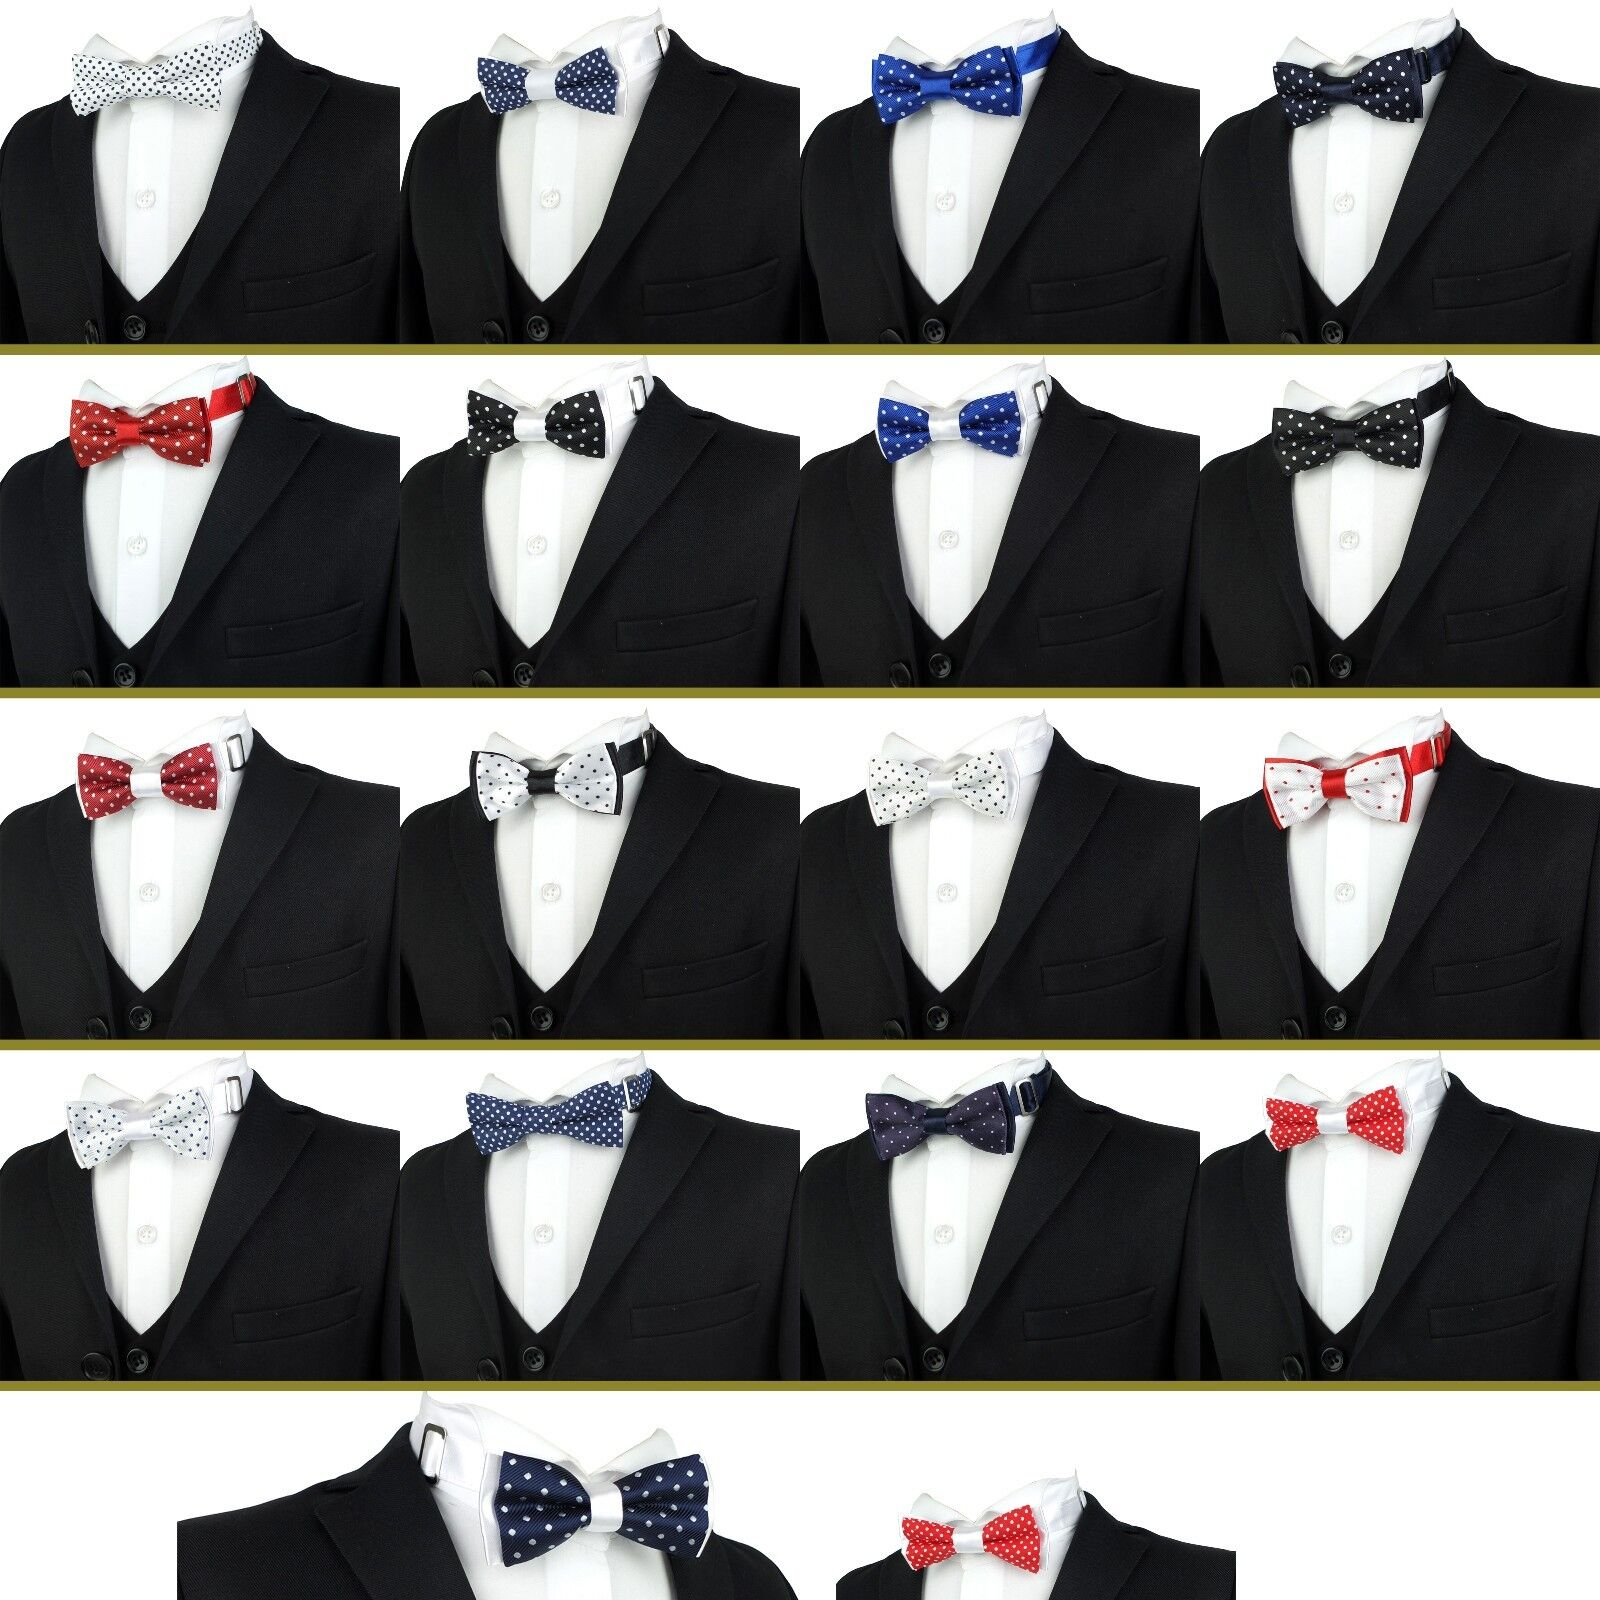 Black Velvet Bow Tie for Men and Women Adjustable Pre-tied Bowtie Wedding Party Accessories